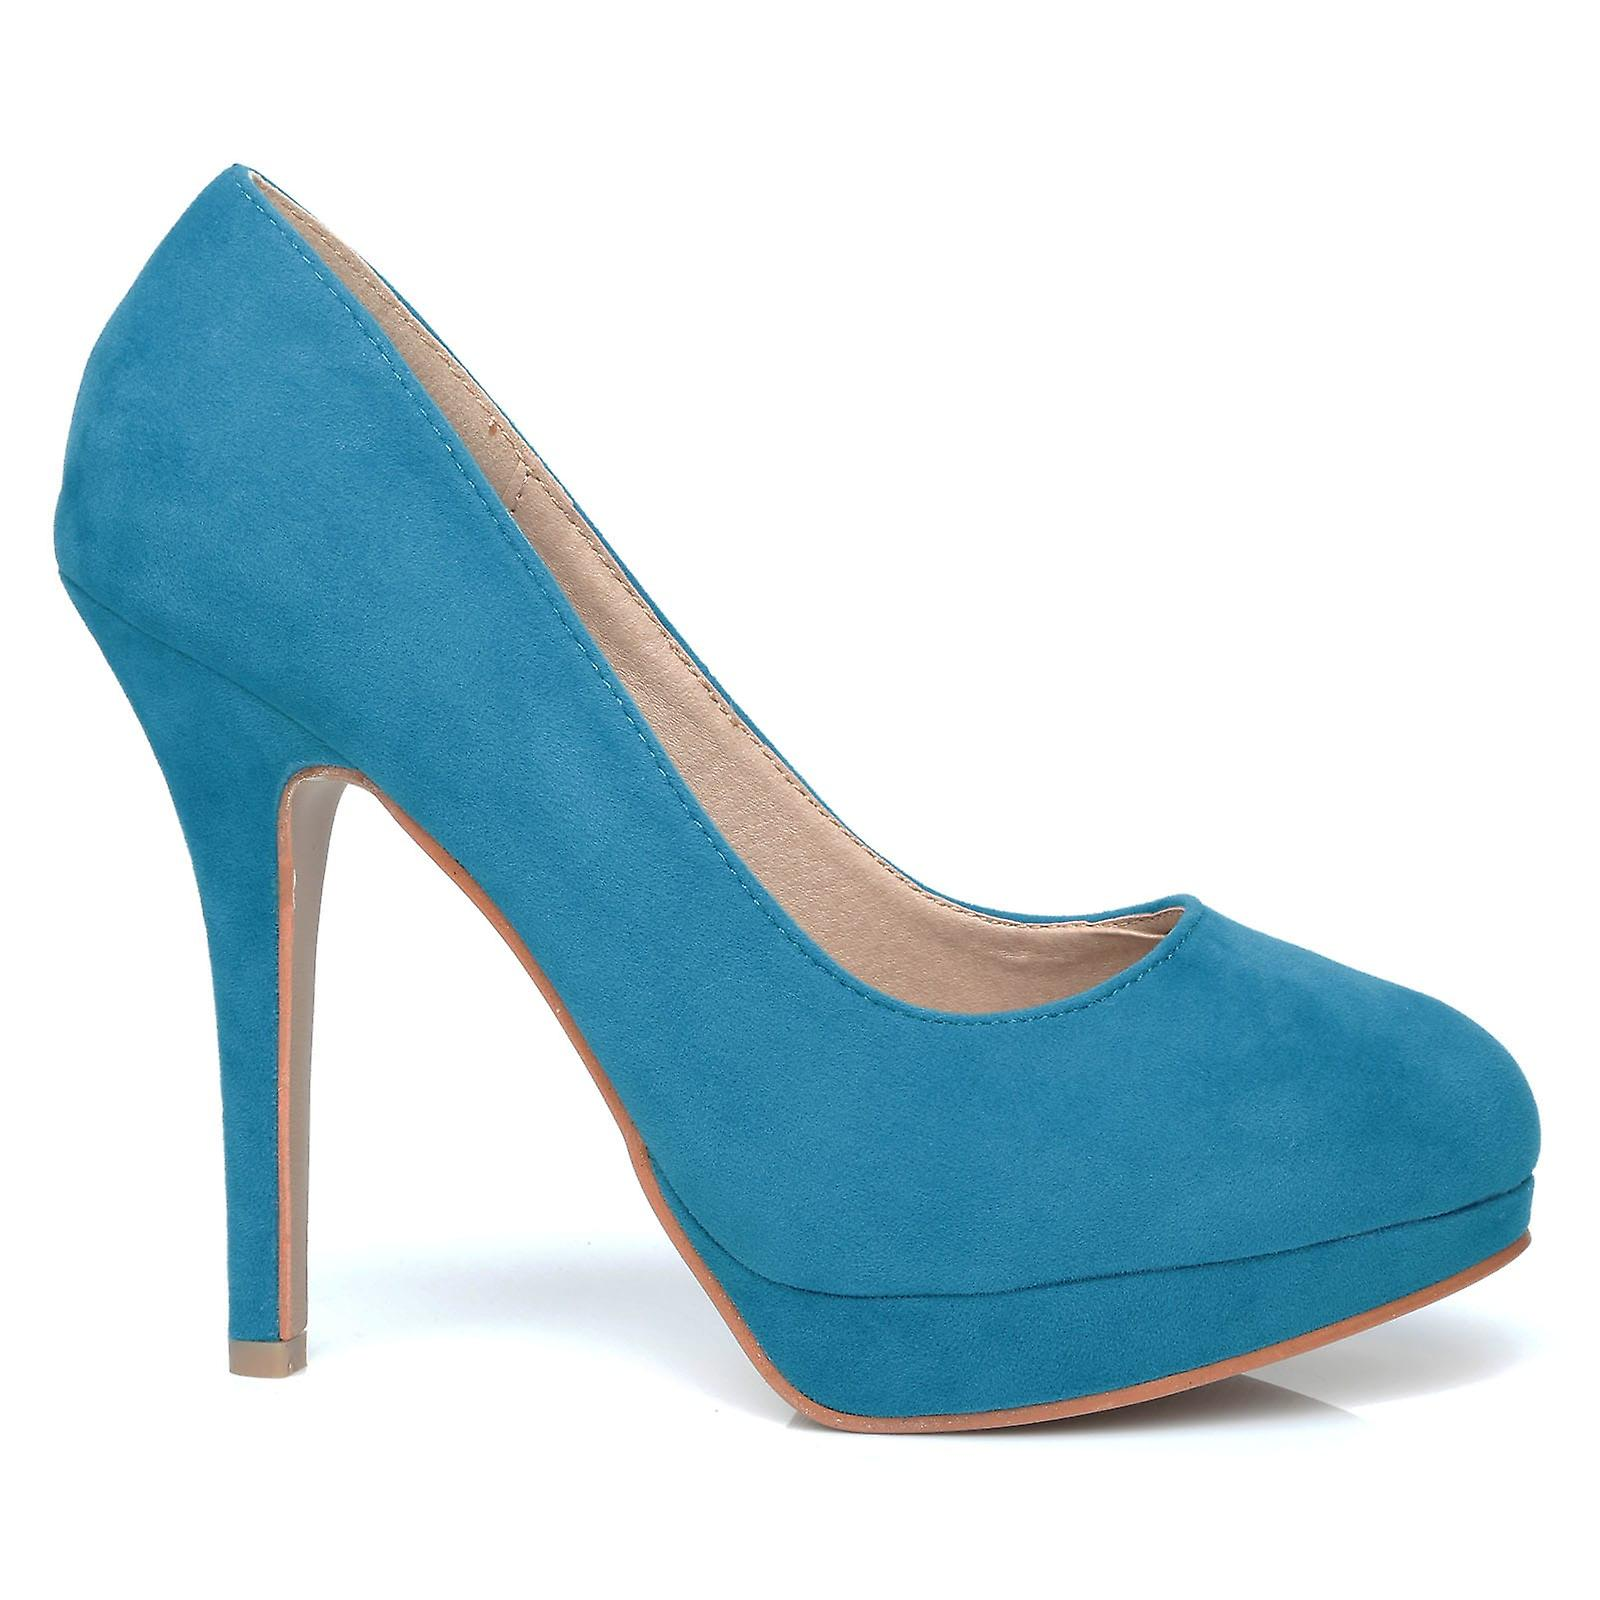 EVE Turquoise Heel Faux Suede Stiletto High Heel Turquoise Platform Court Shoes 54e220